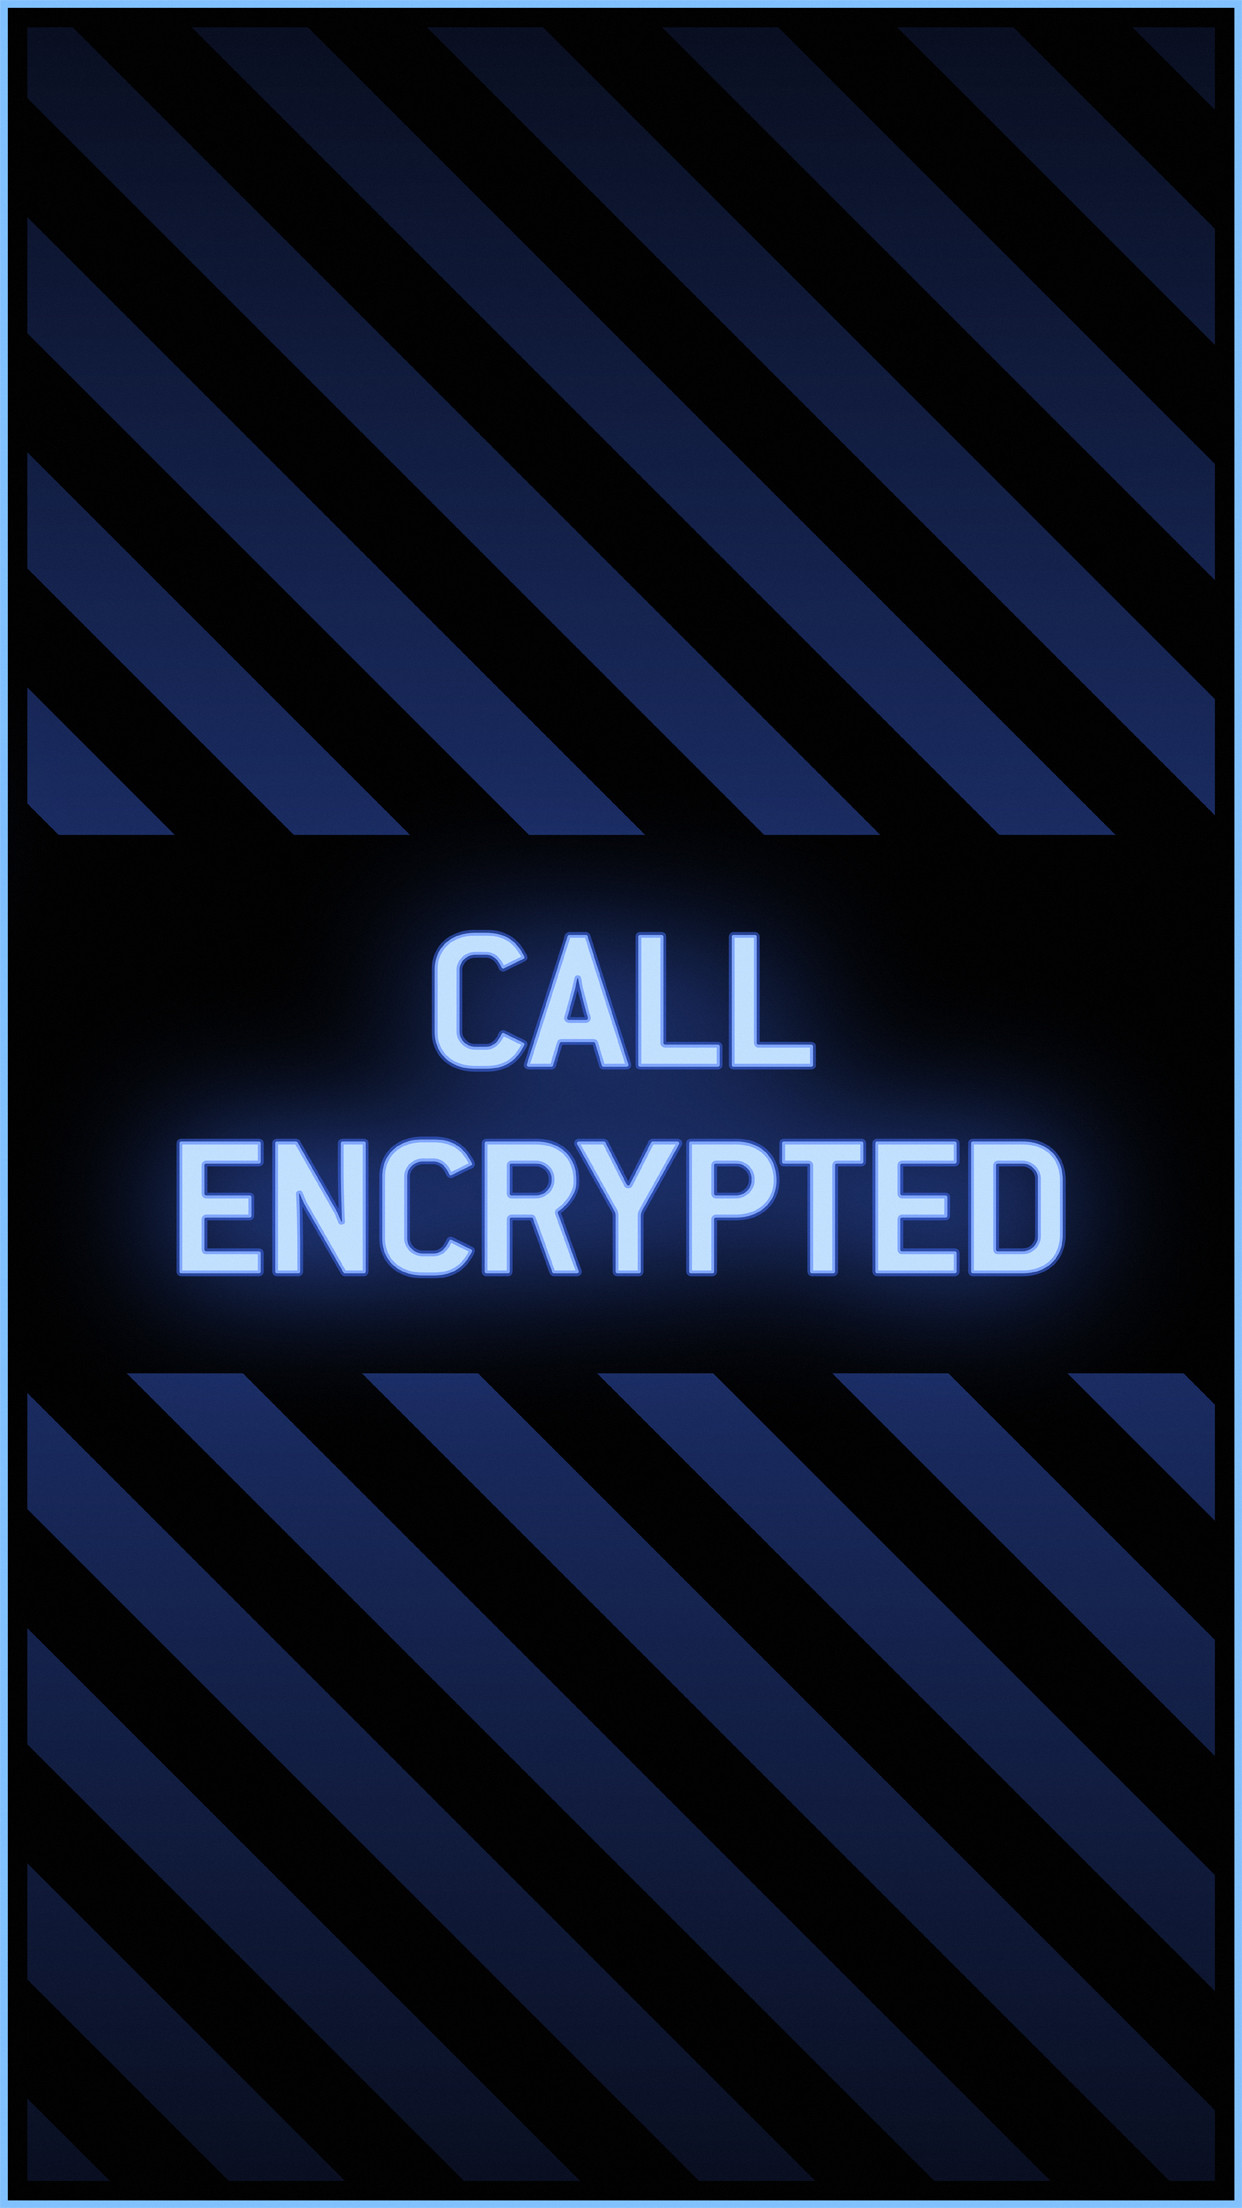 call encrypted iph6plus